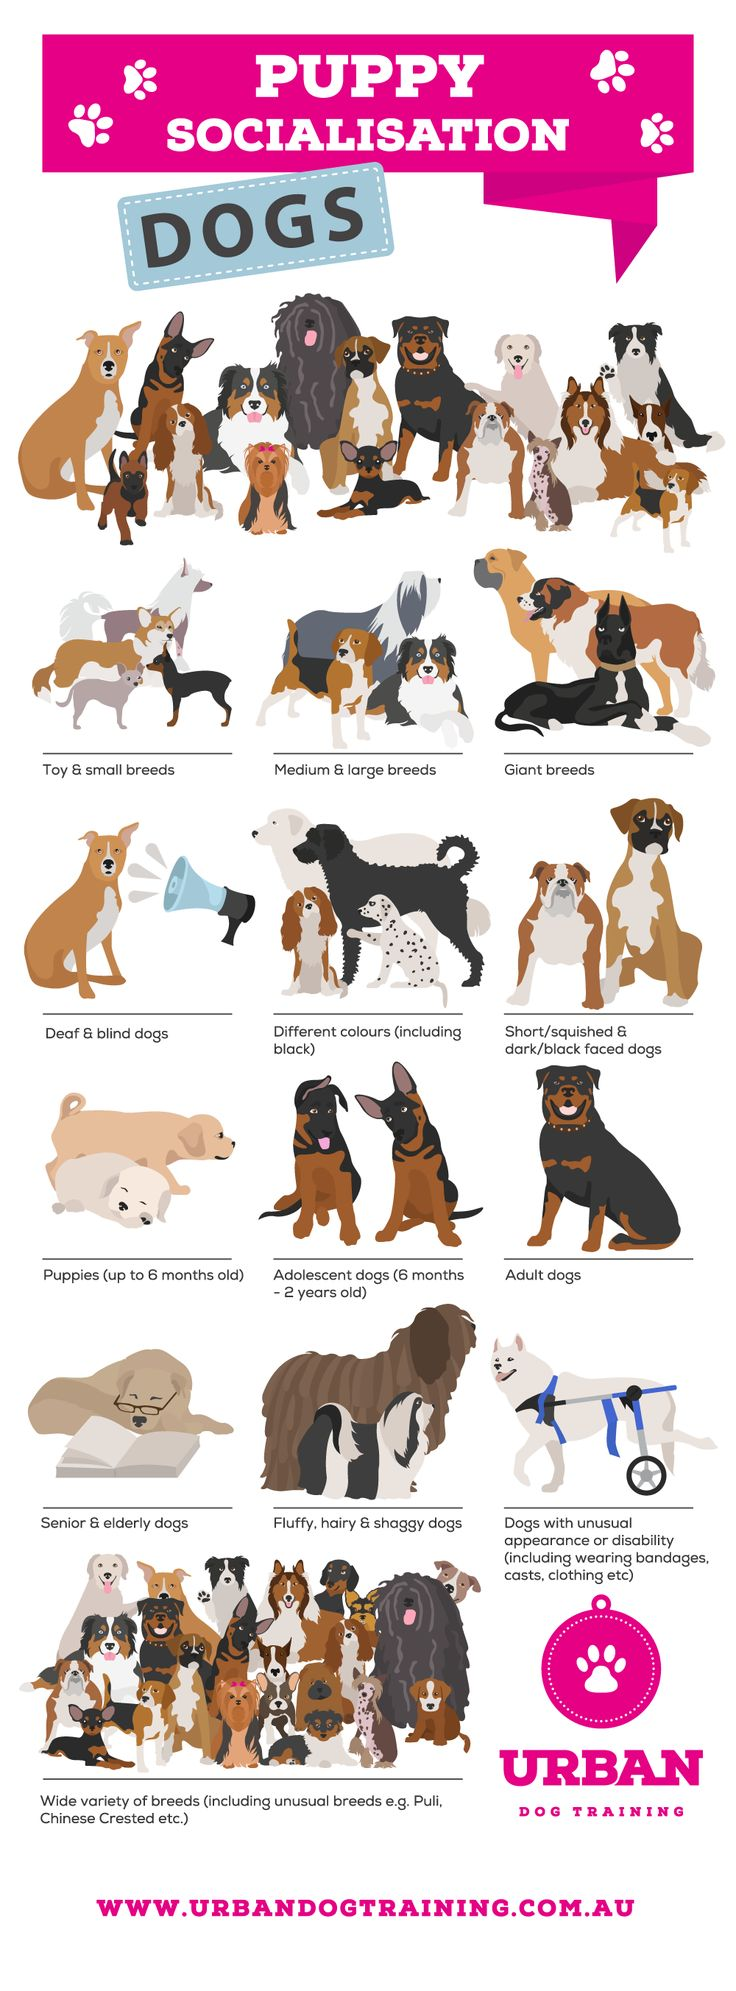 Hello! clipart socialisation Is Variety The play dogs